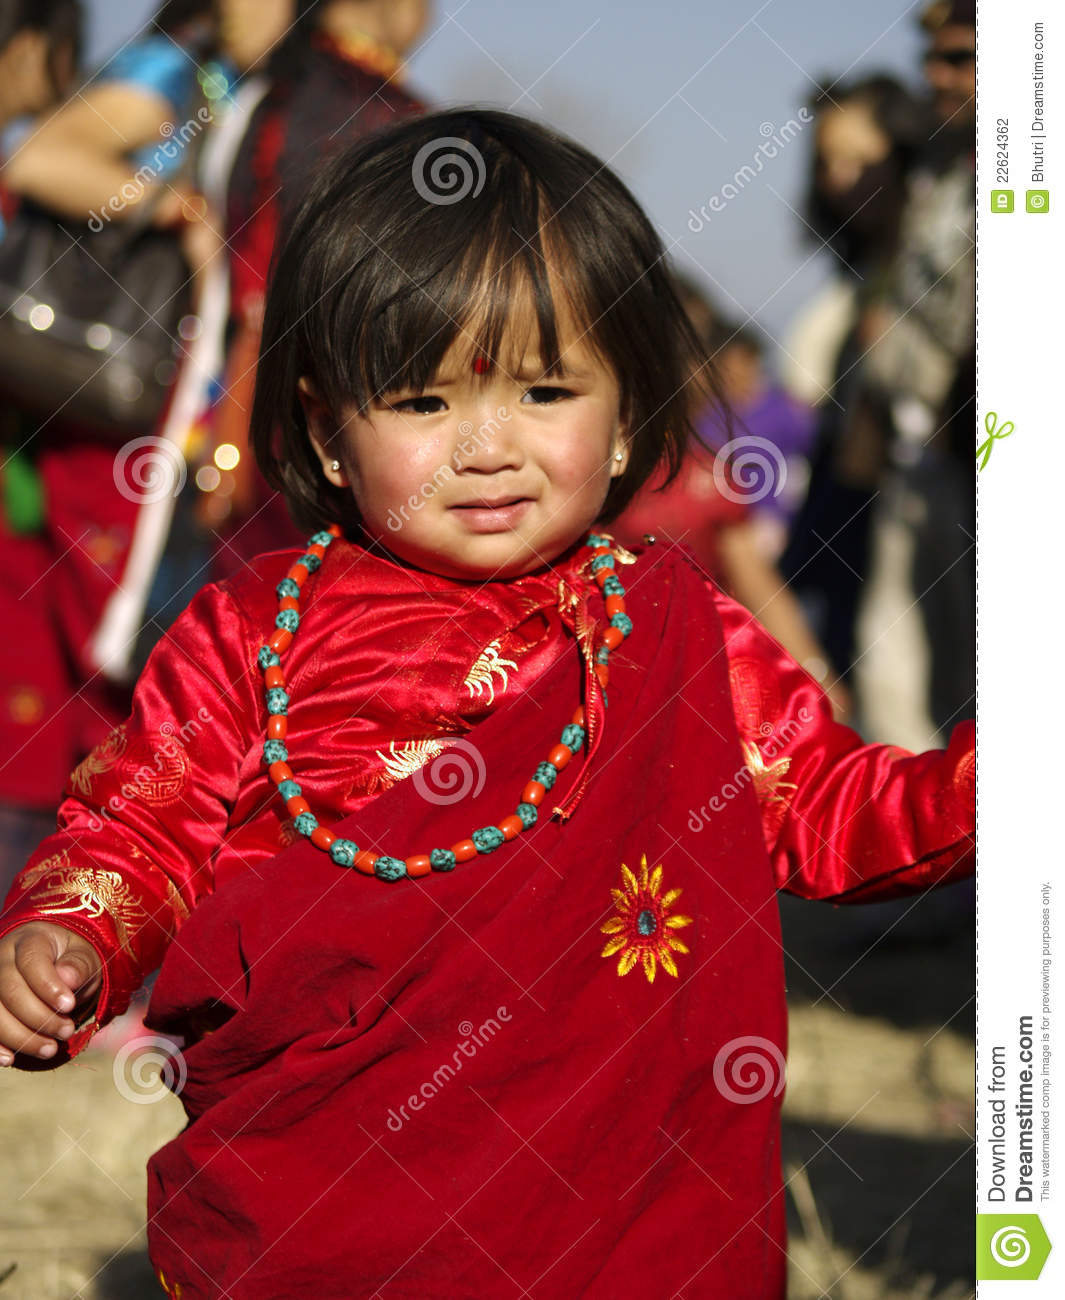 ... small gurung girl in traditional Gurung dress and ornaments